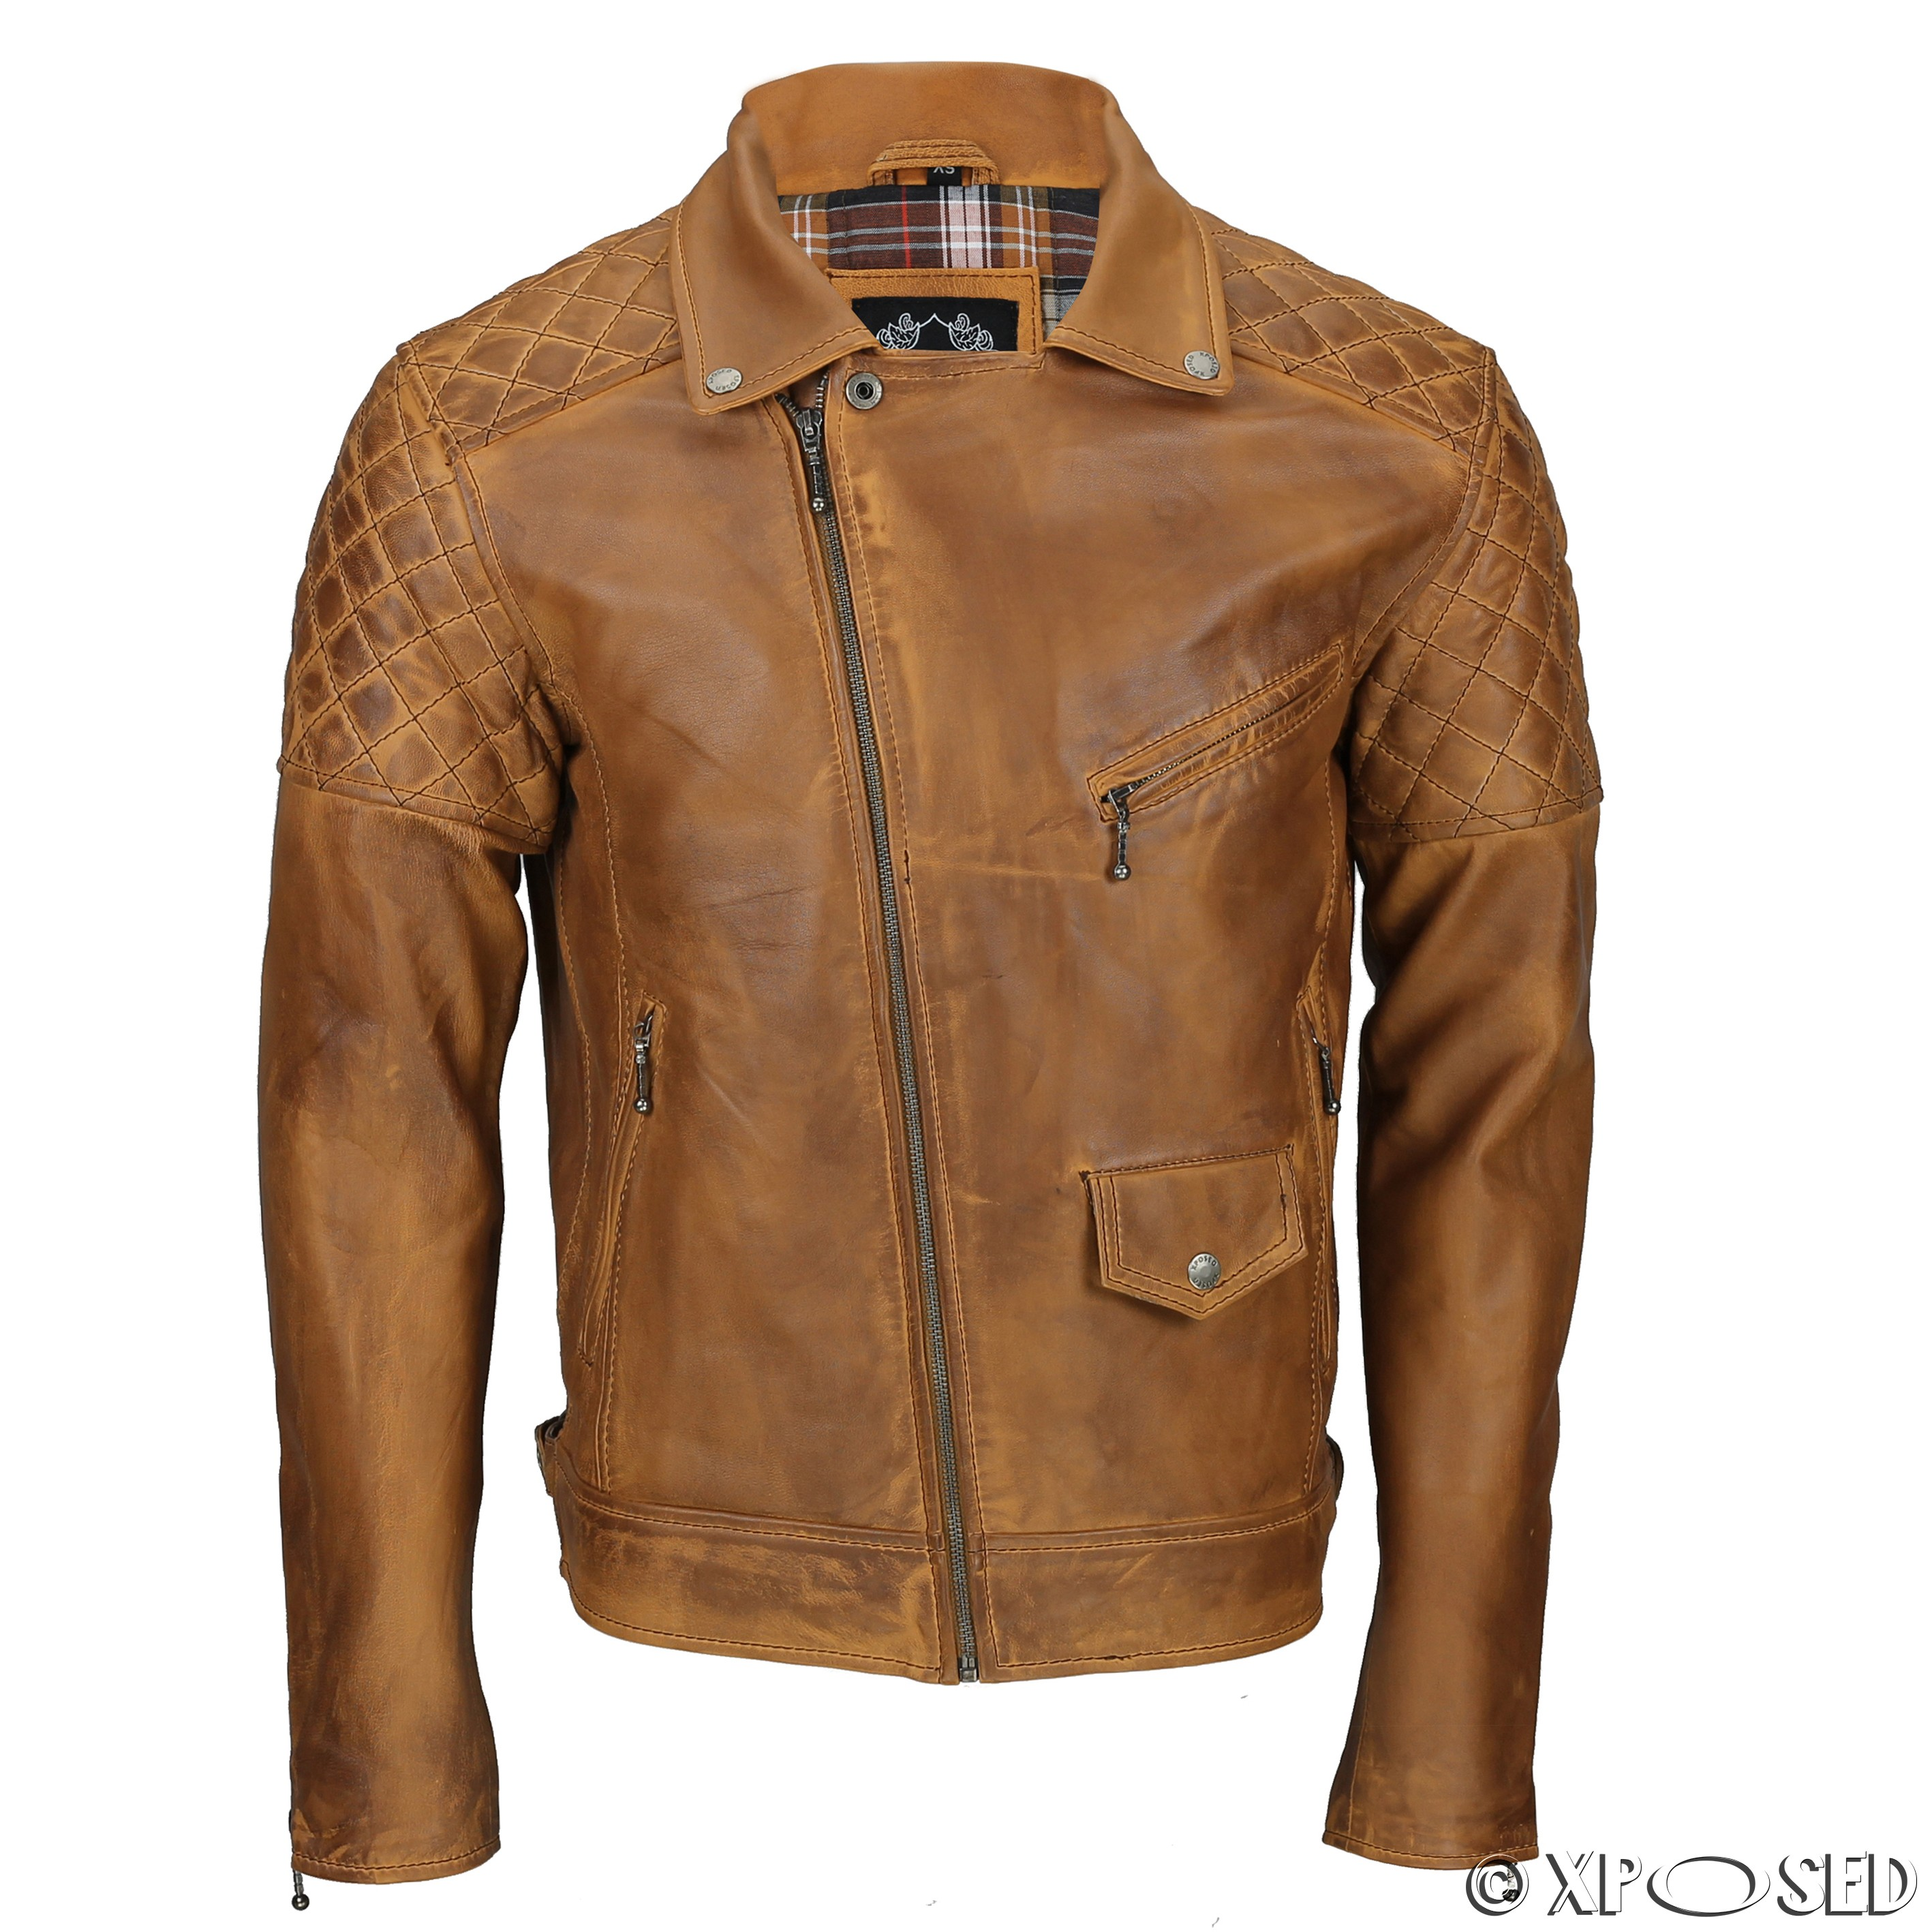 Find Brown Leather Motorcycle Jackets at J&P Cycles, your source for aftermarket motorcycle parts and accessories.